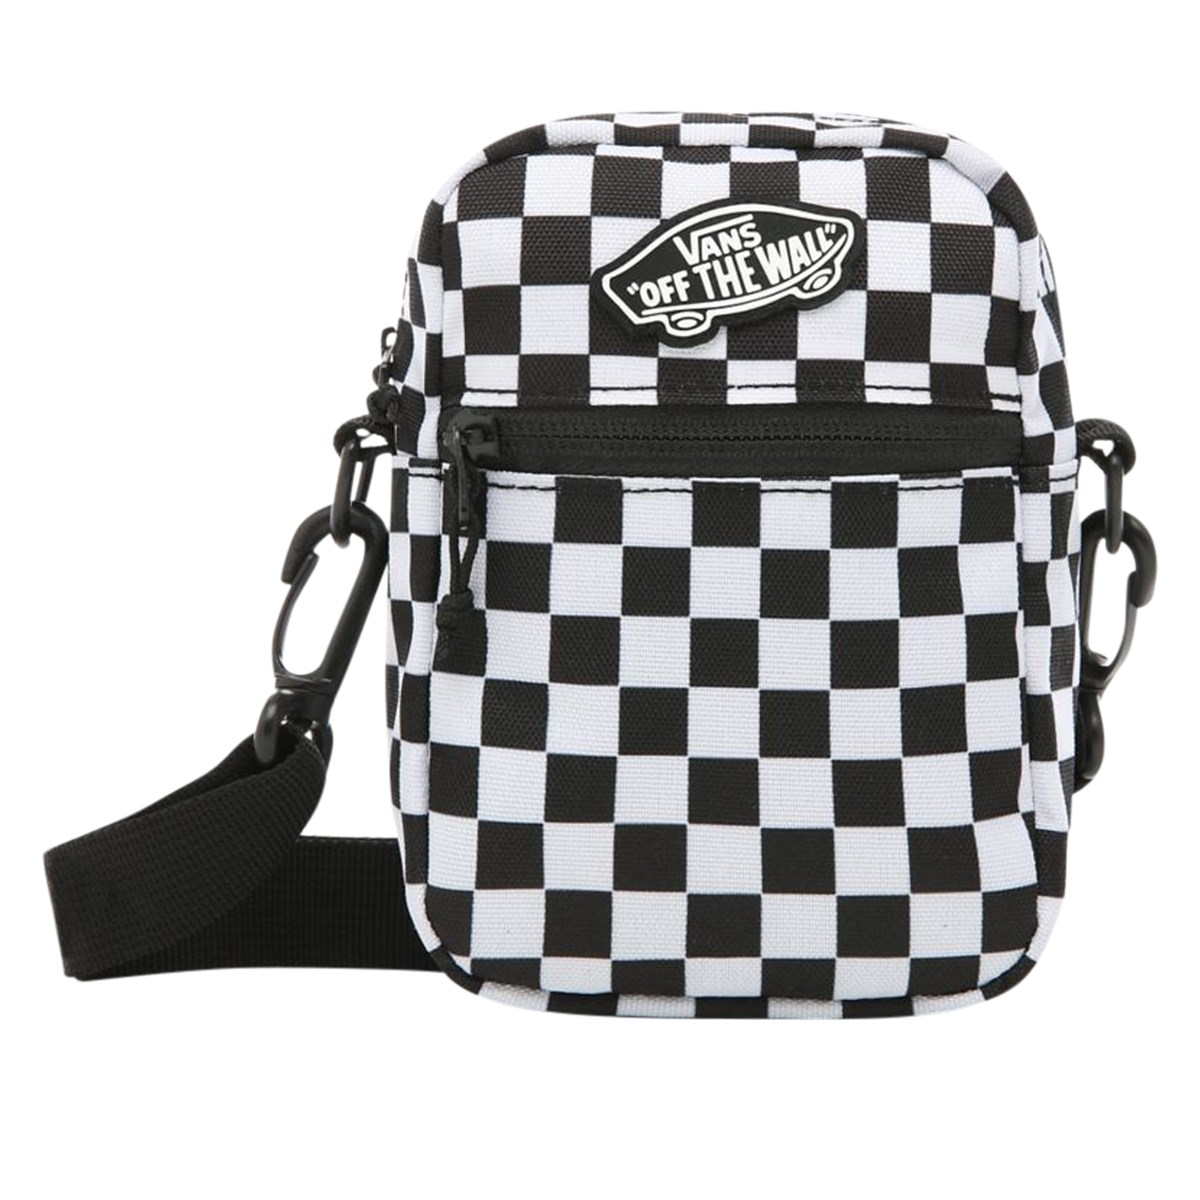 Street Ready Crossbody Bag in Checkerboard